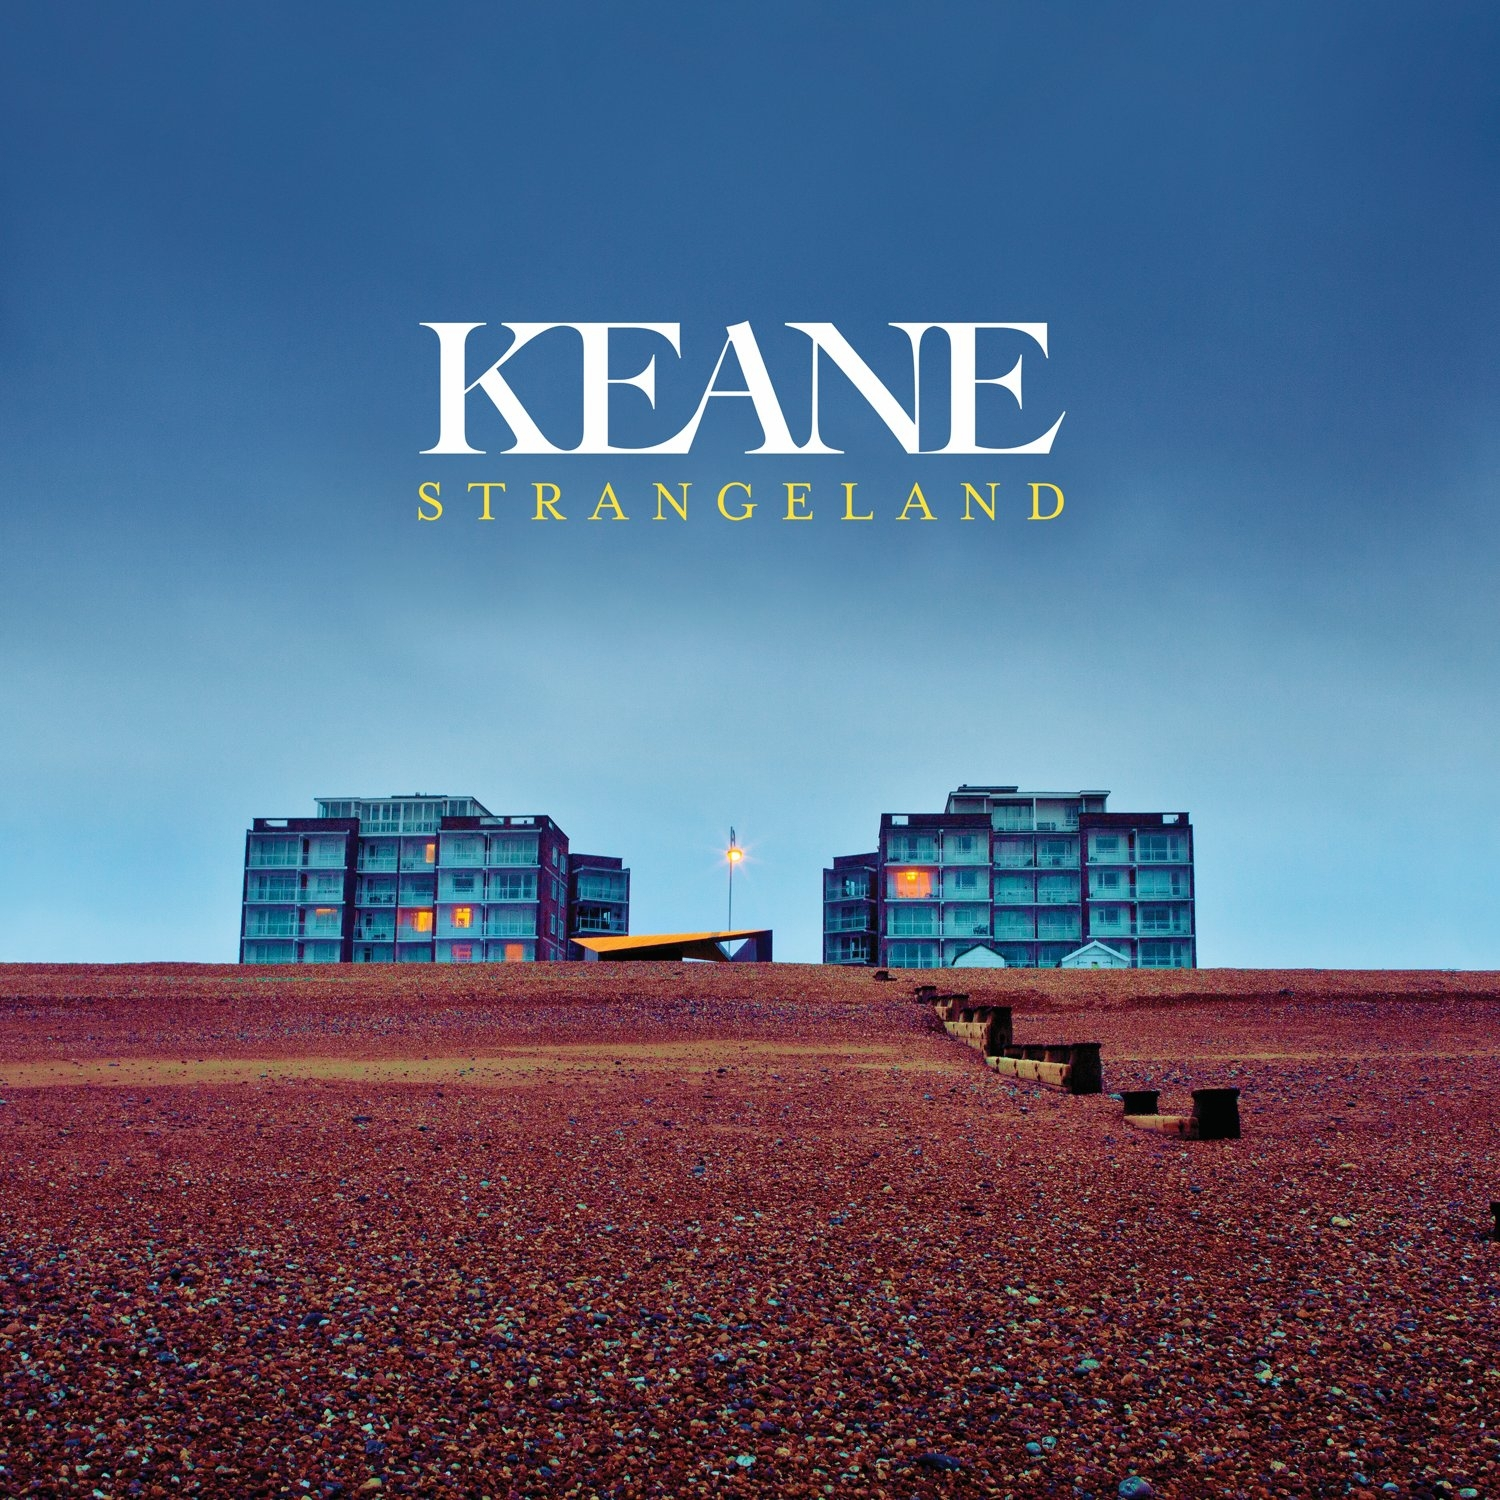 Keane - Strangeland (Standard) - MP3 Download